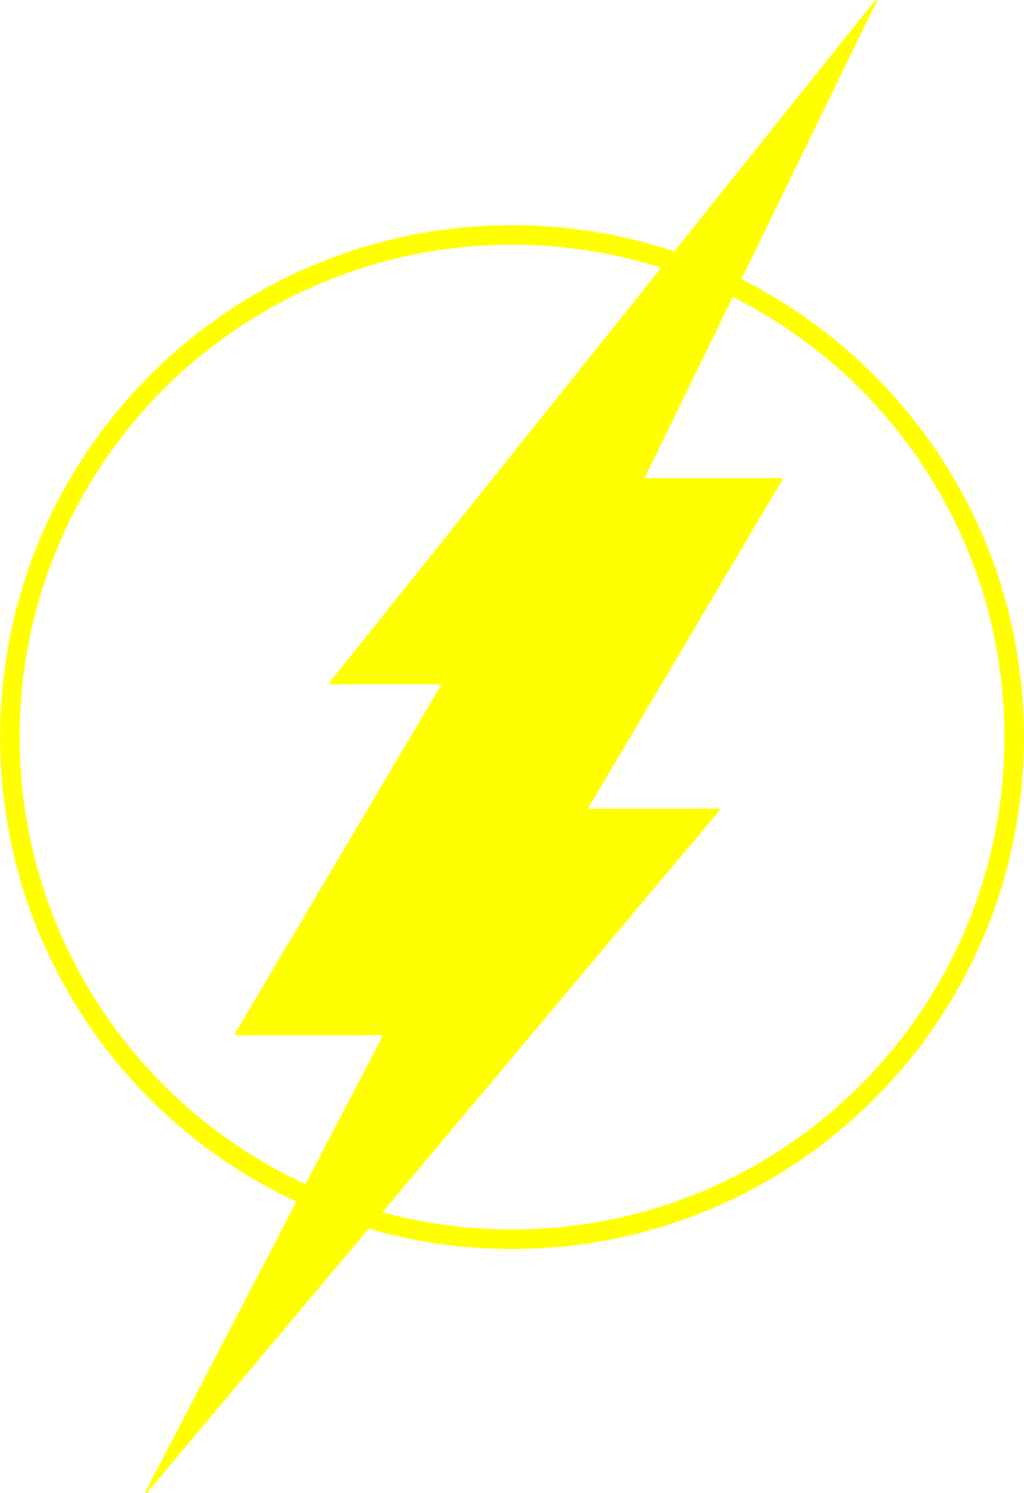 flash superhero logo - photo #12